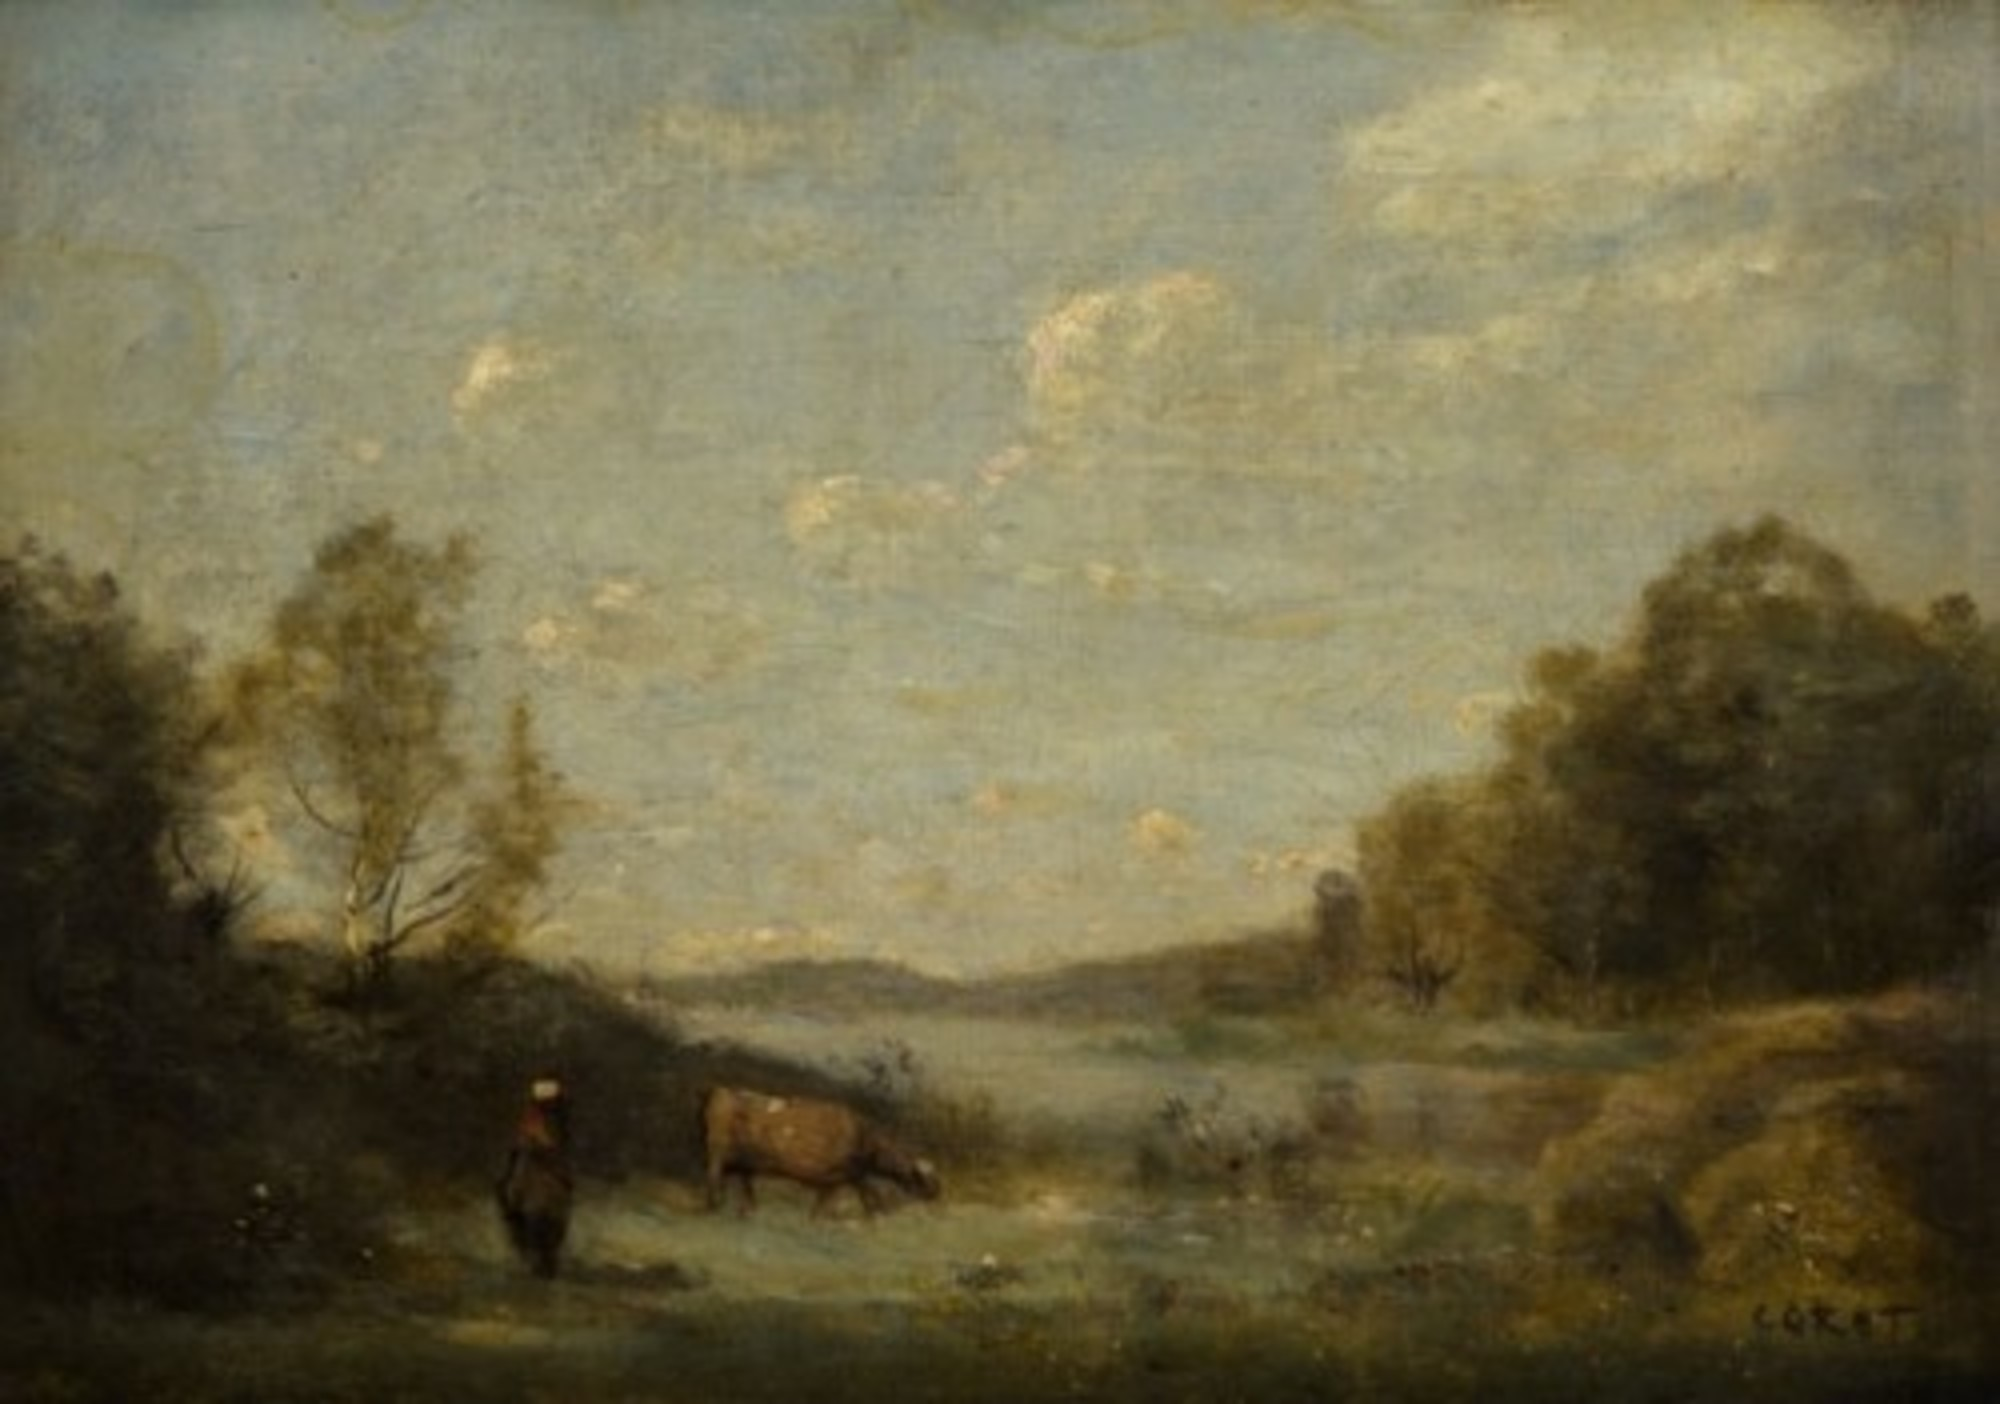 Corot---The-Lake-circa-1865-1870-possibly.jpg